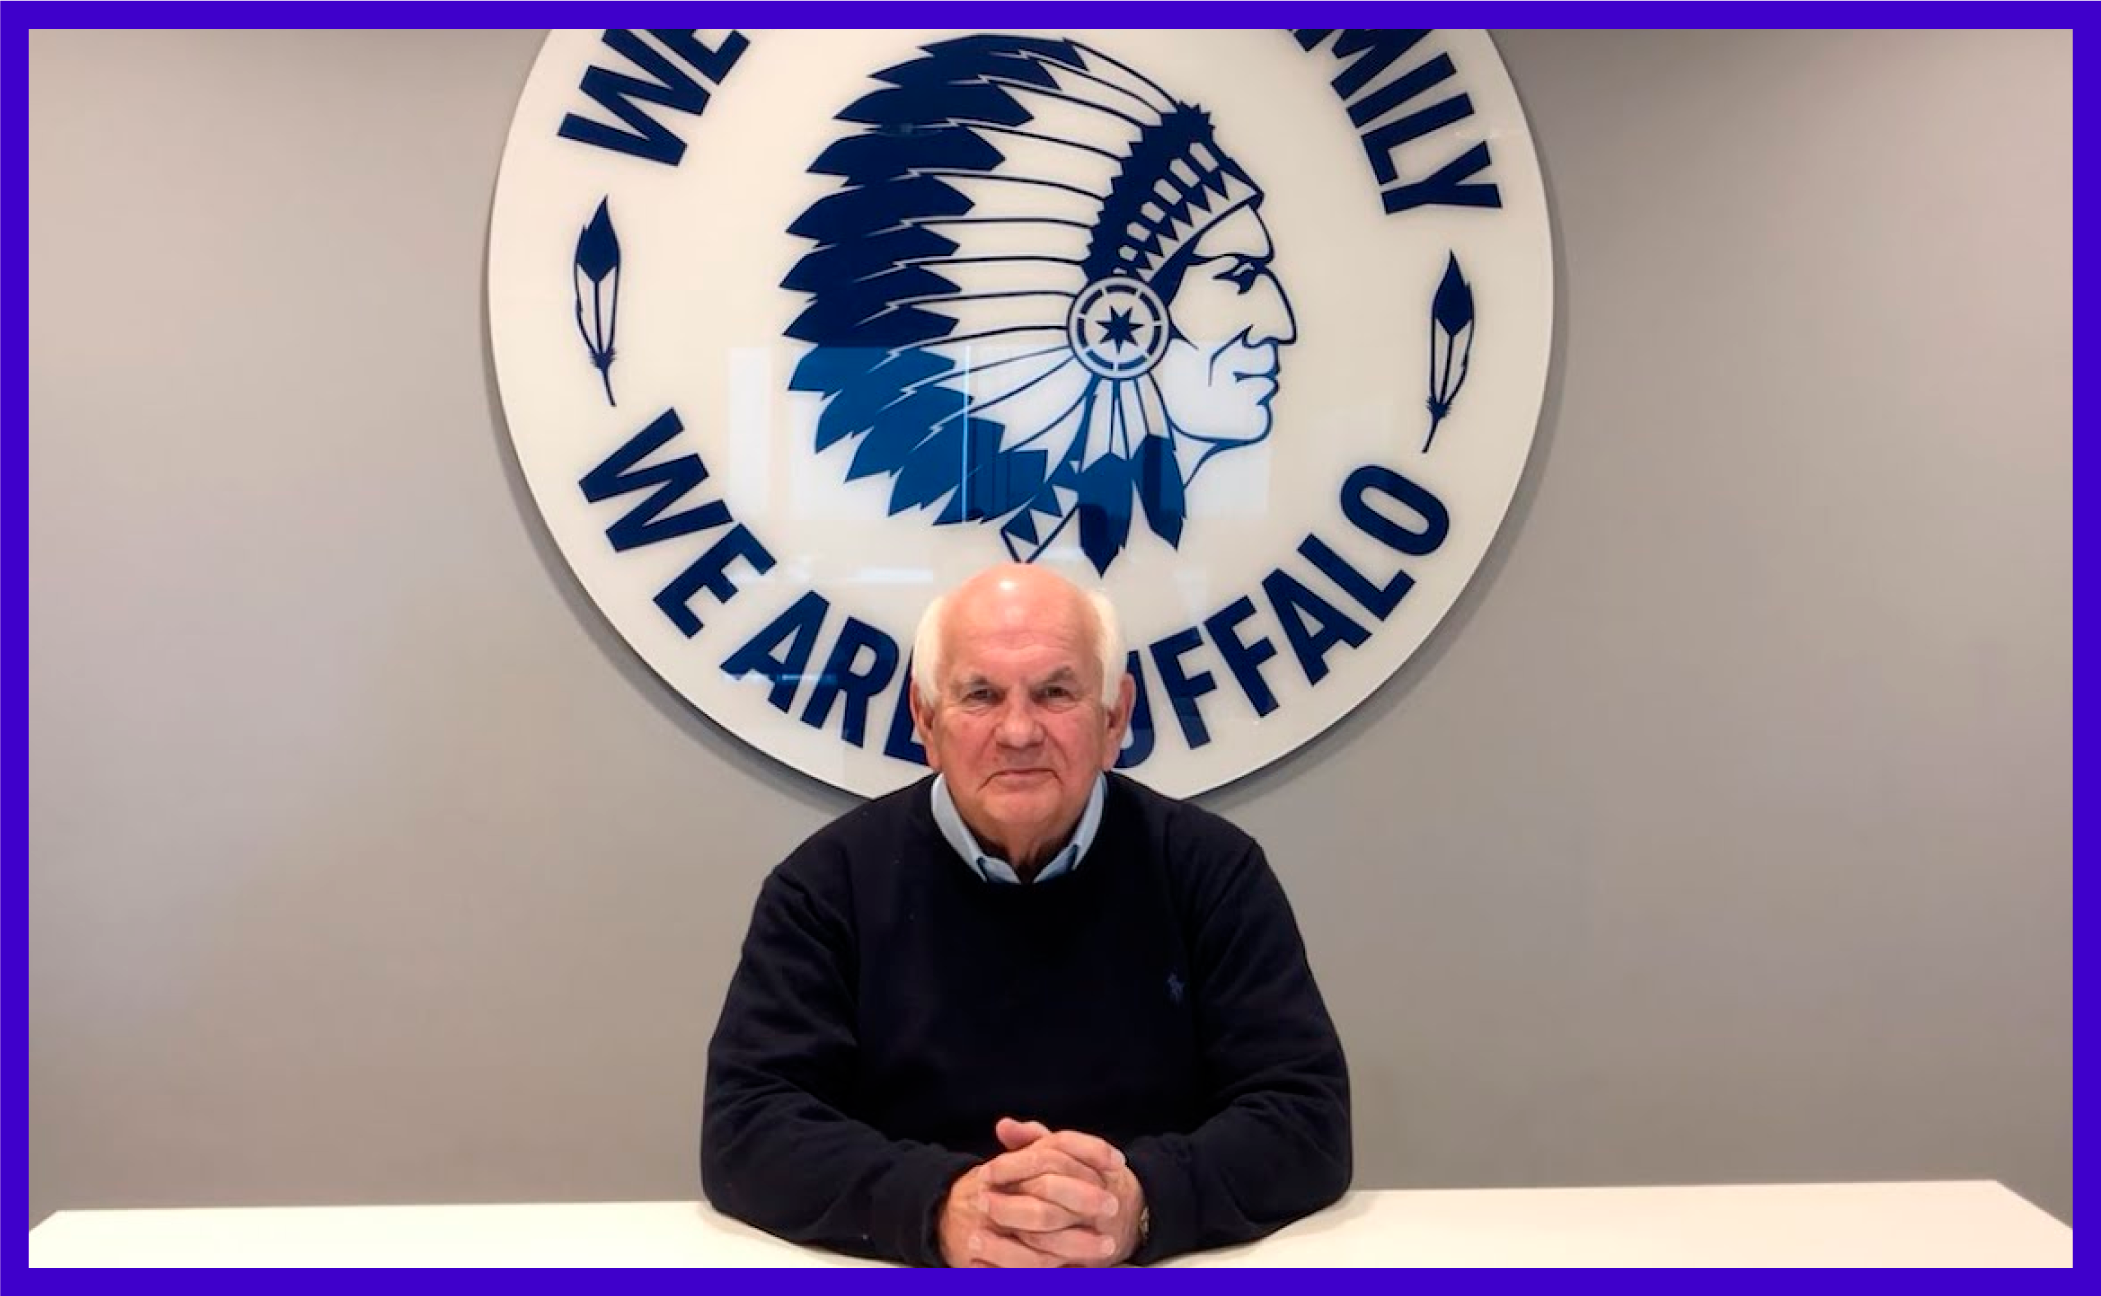 Football club KAA Gent's chairman Ivan De Witte, before We Are One Family, We Are Buffalo sign and KAA Gent logo